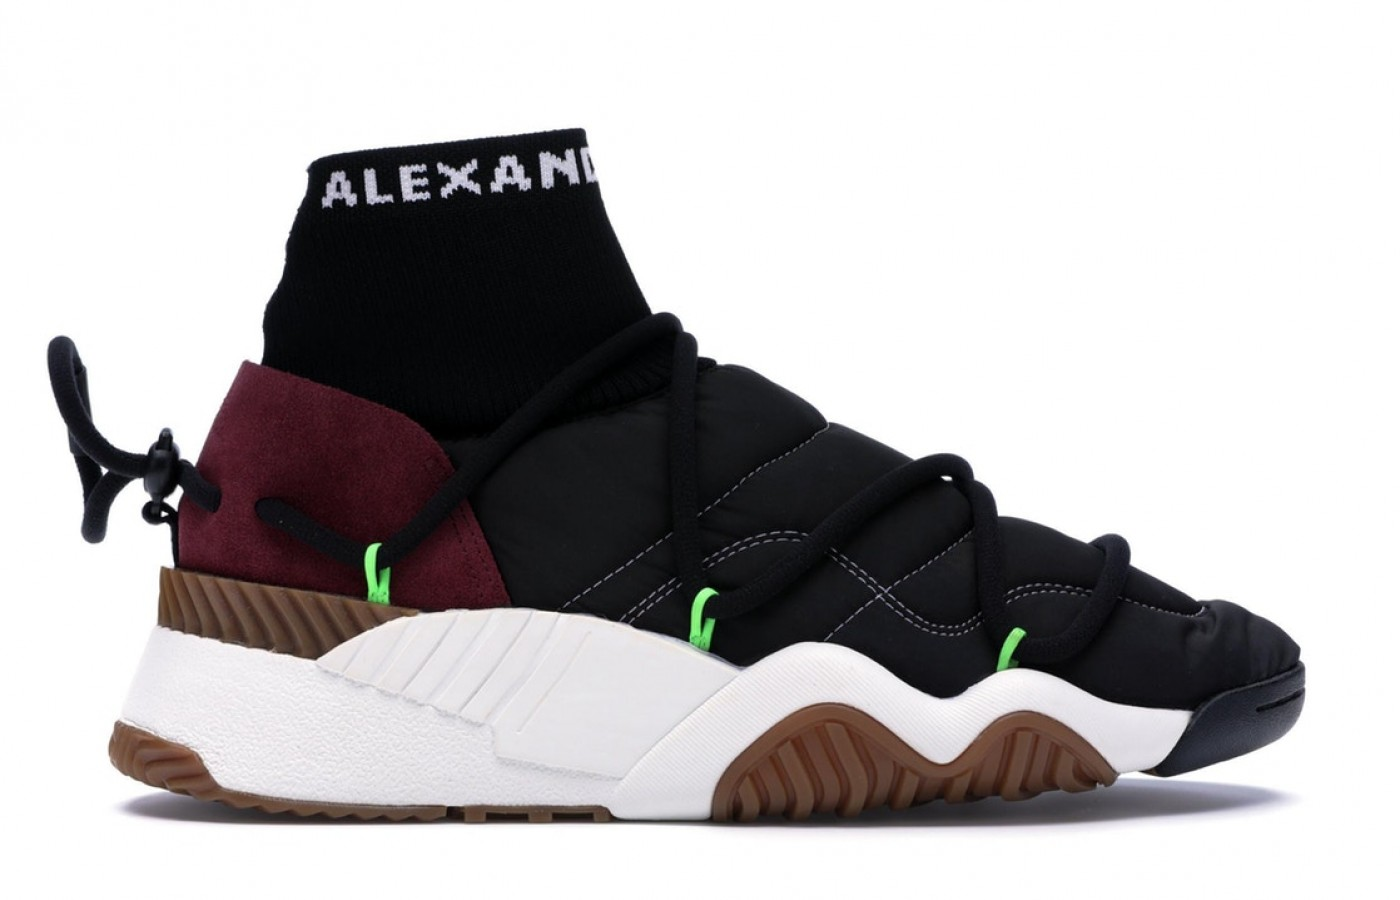 Adidas Alexander Wang Puff Trainer | Unboxing + On Foot